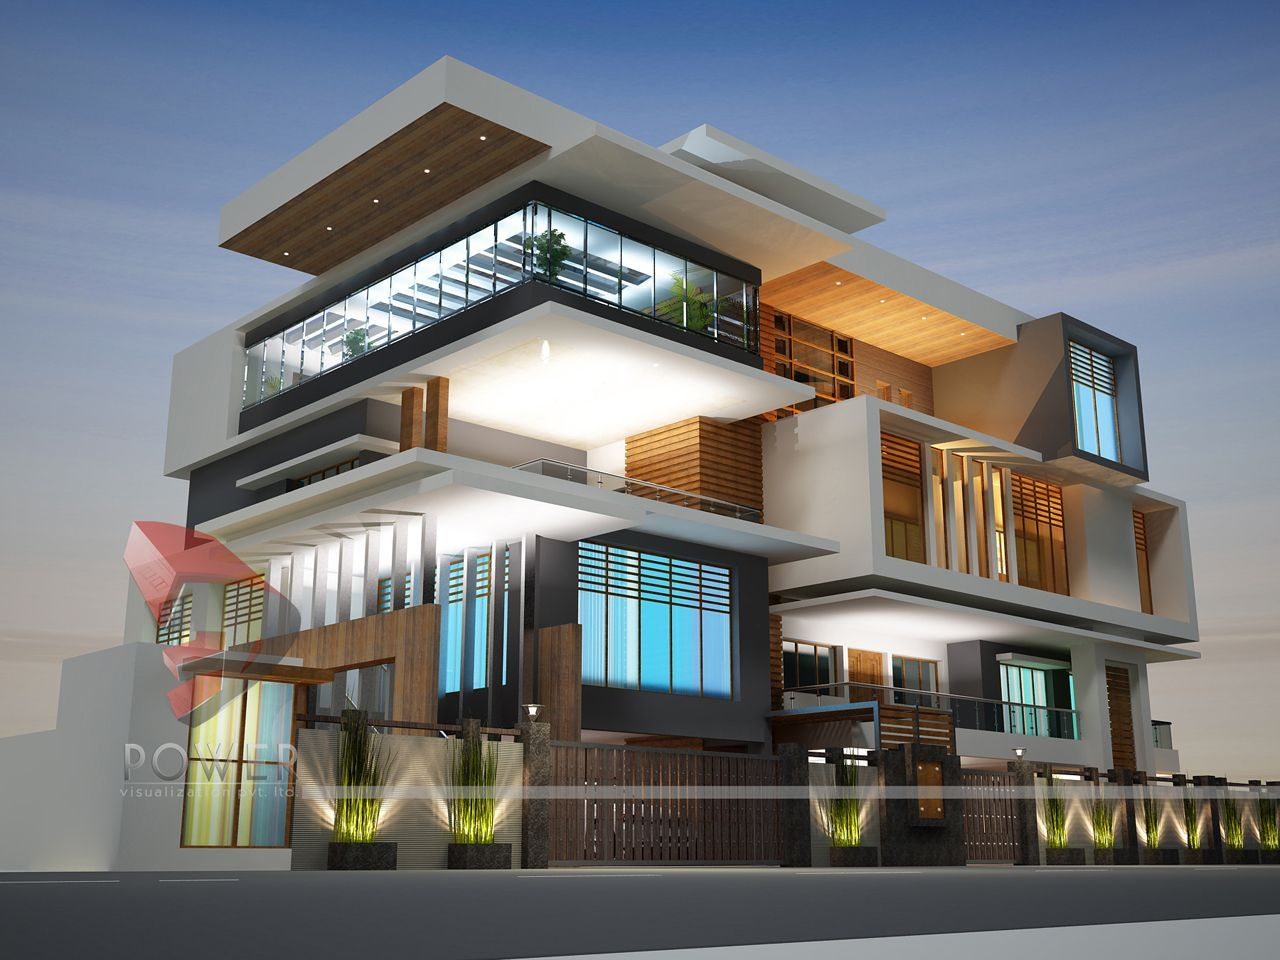 Modern house design in india architecture india modern for Architecture design small house india